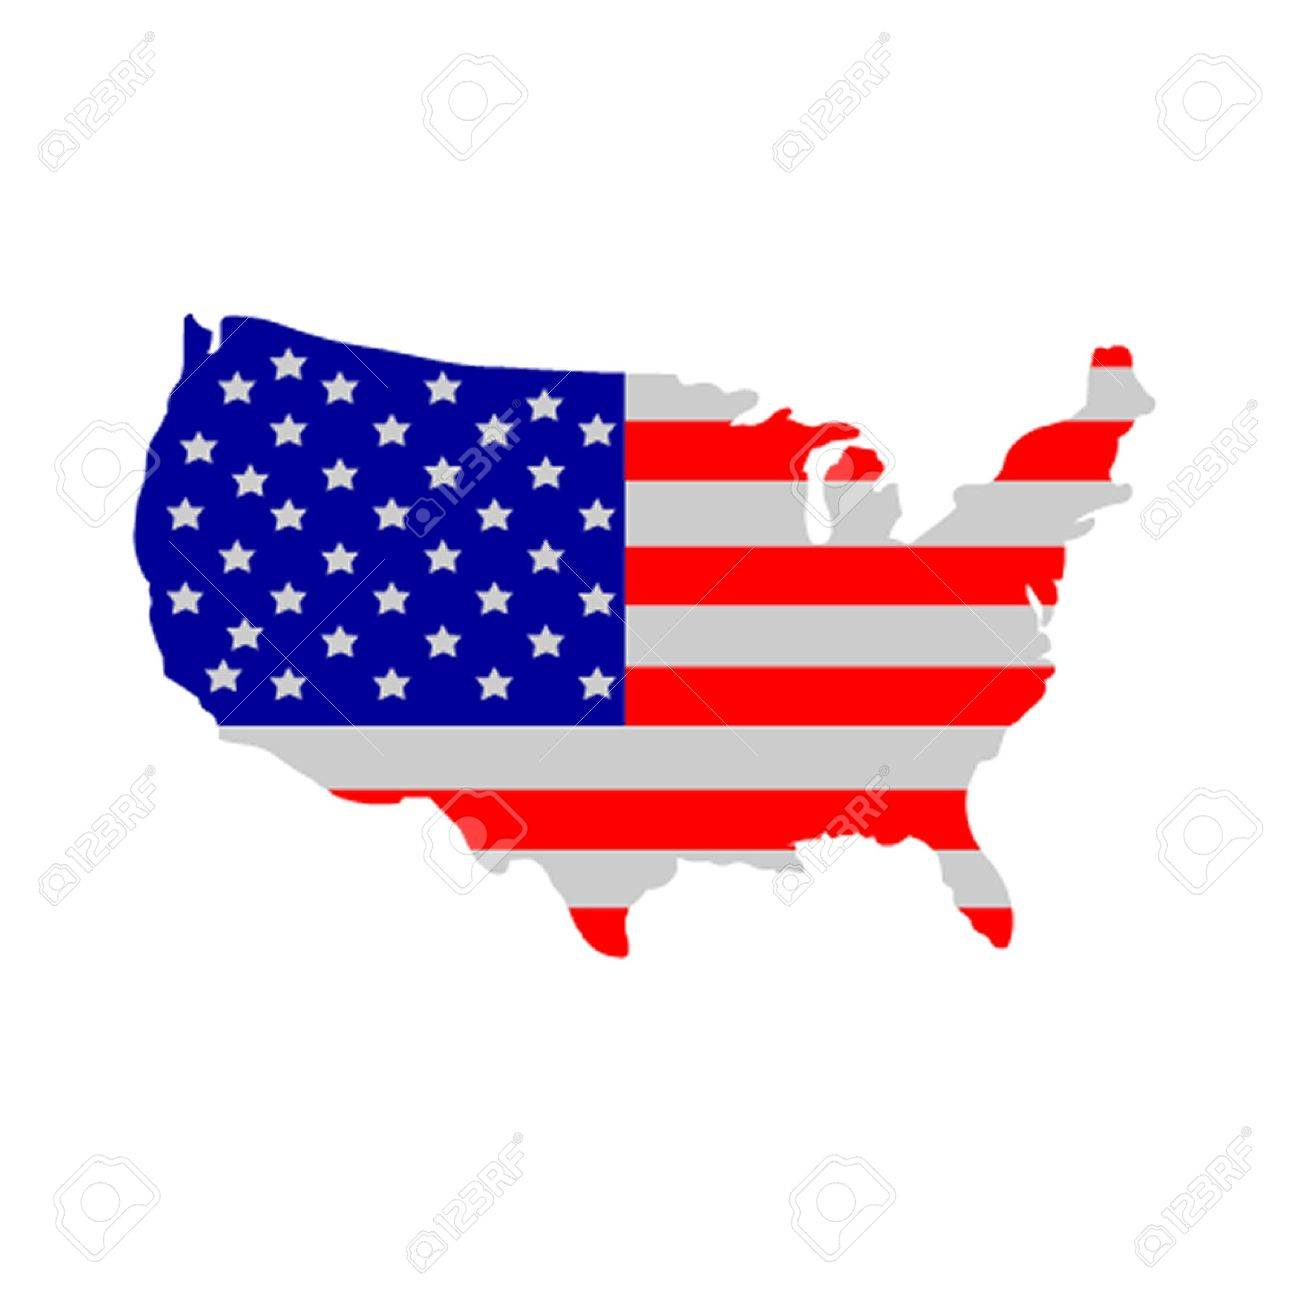 United States Of America Flag Royalty Free Cliparts, Vectors, And ...